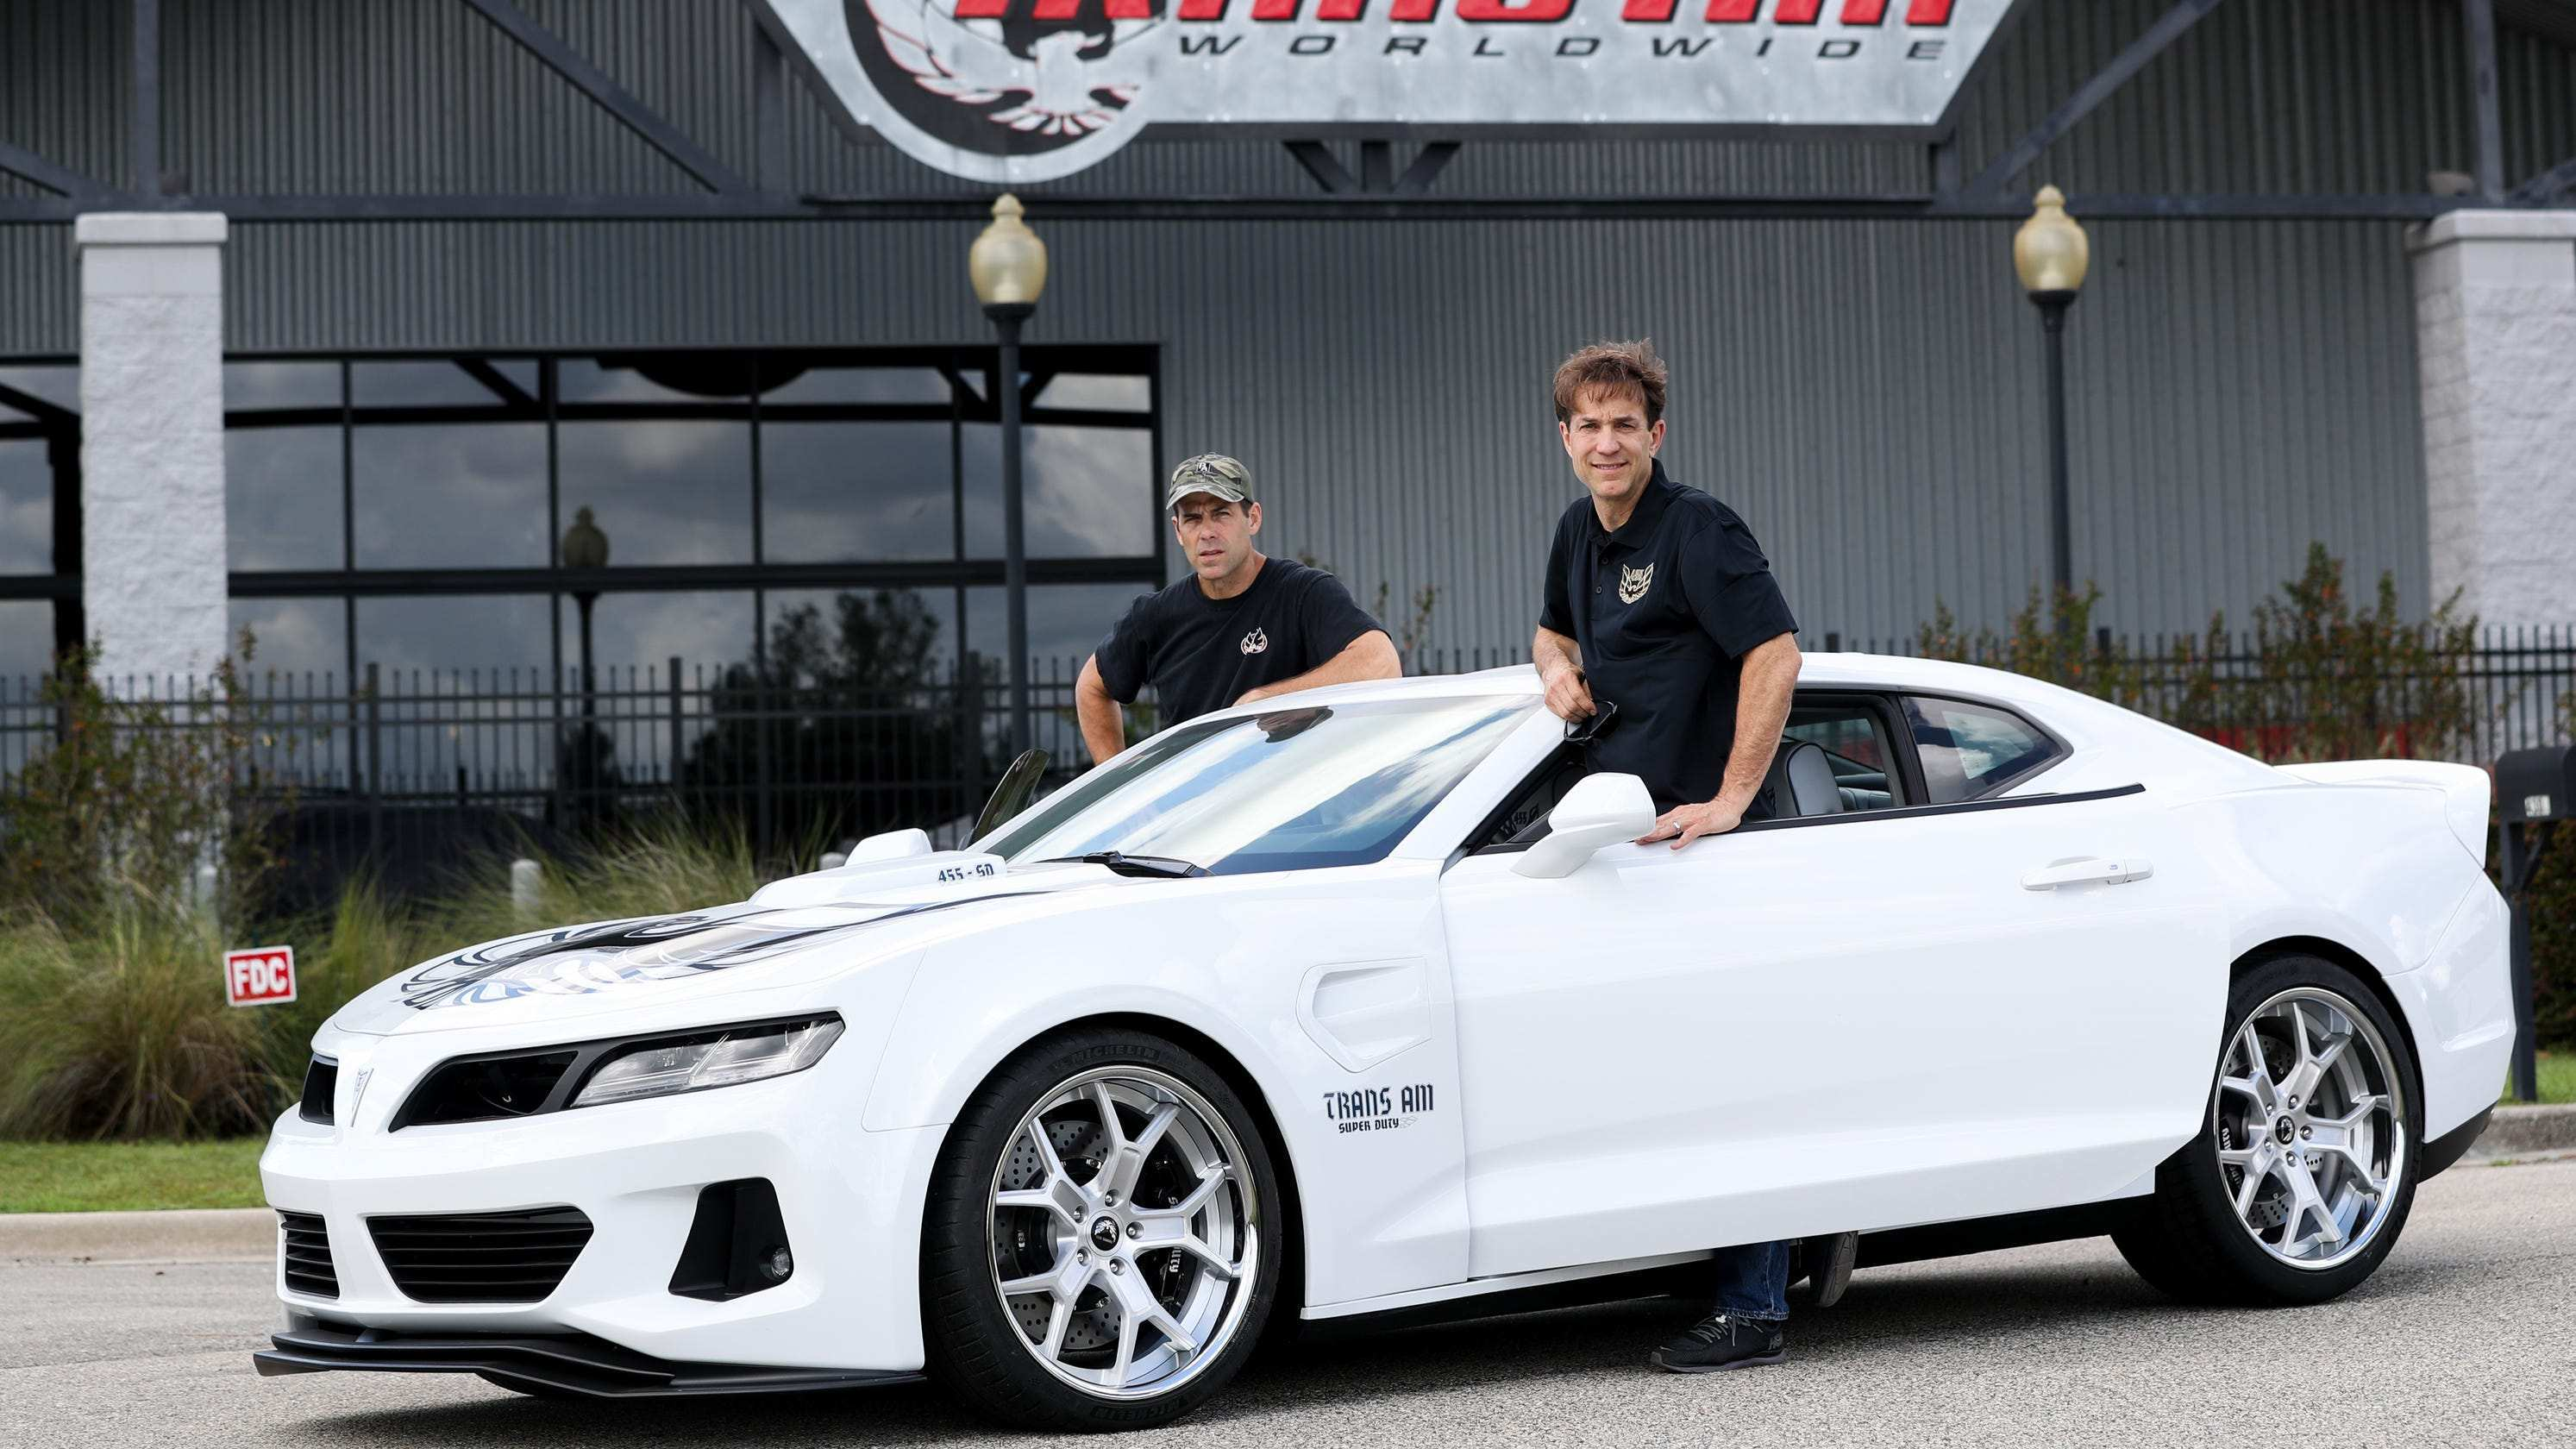 87 All New Pictures Of A Trans Am Overview by Pictures Of A Trans Am